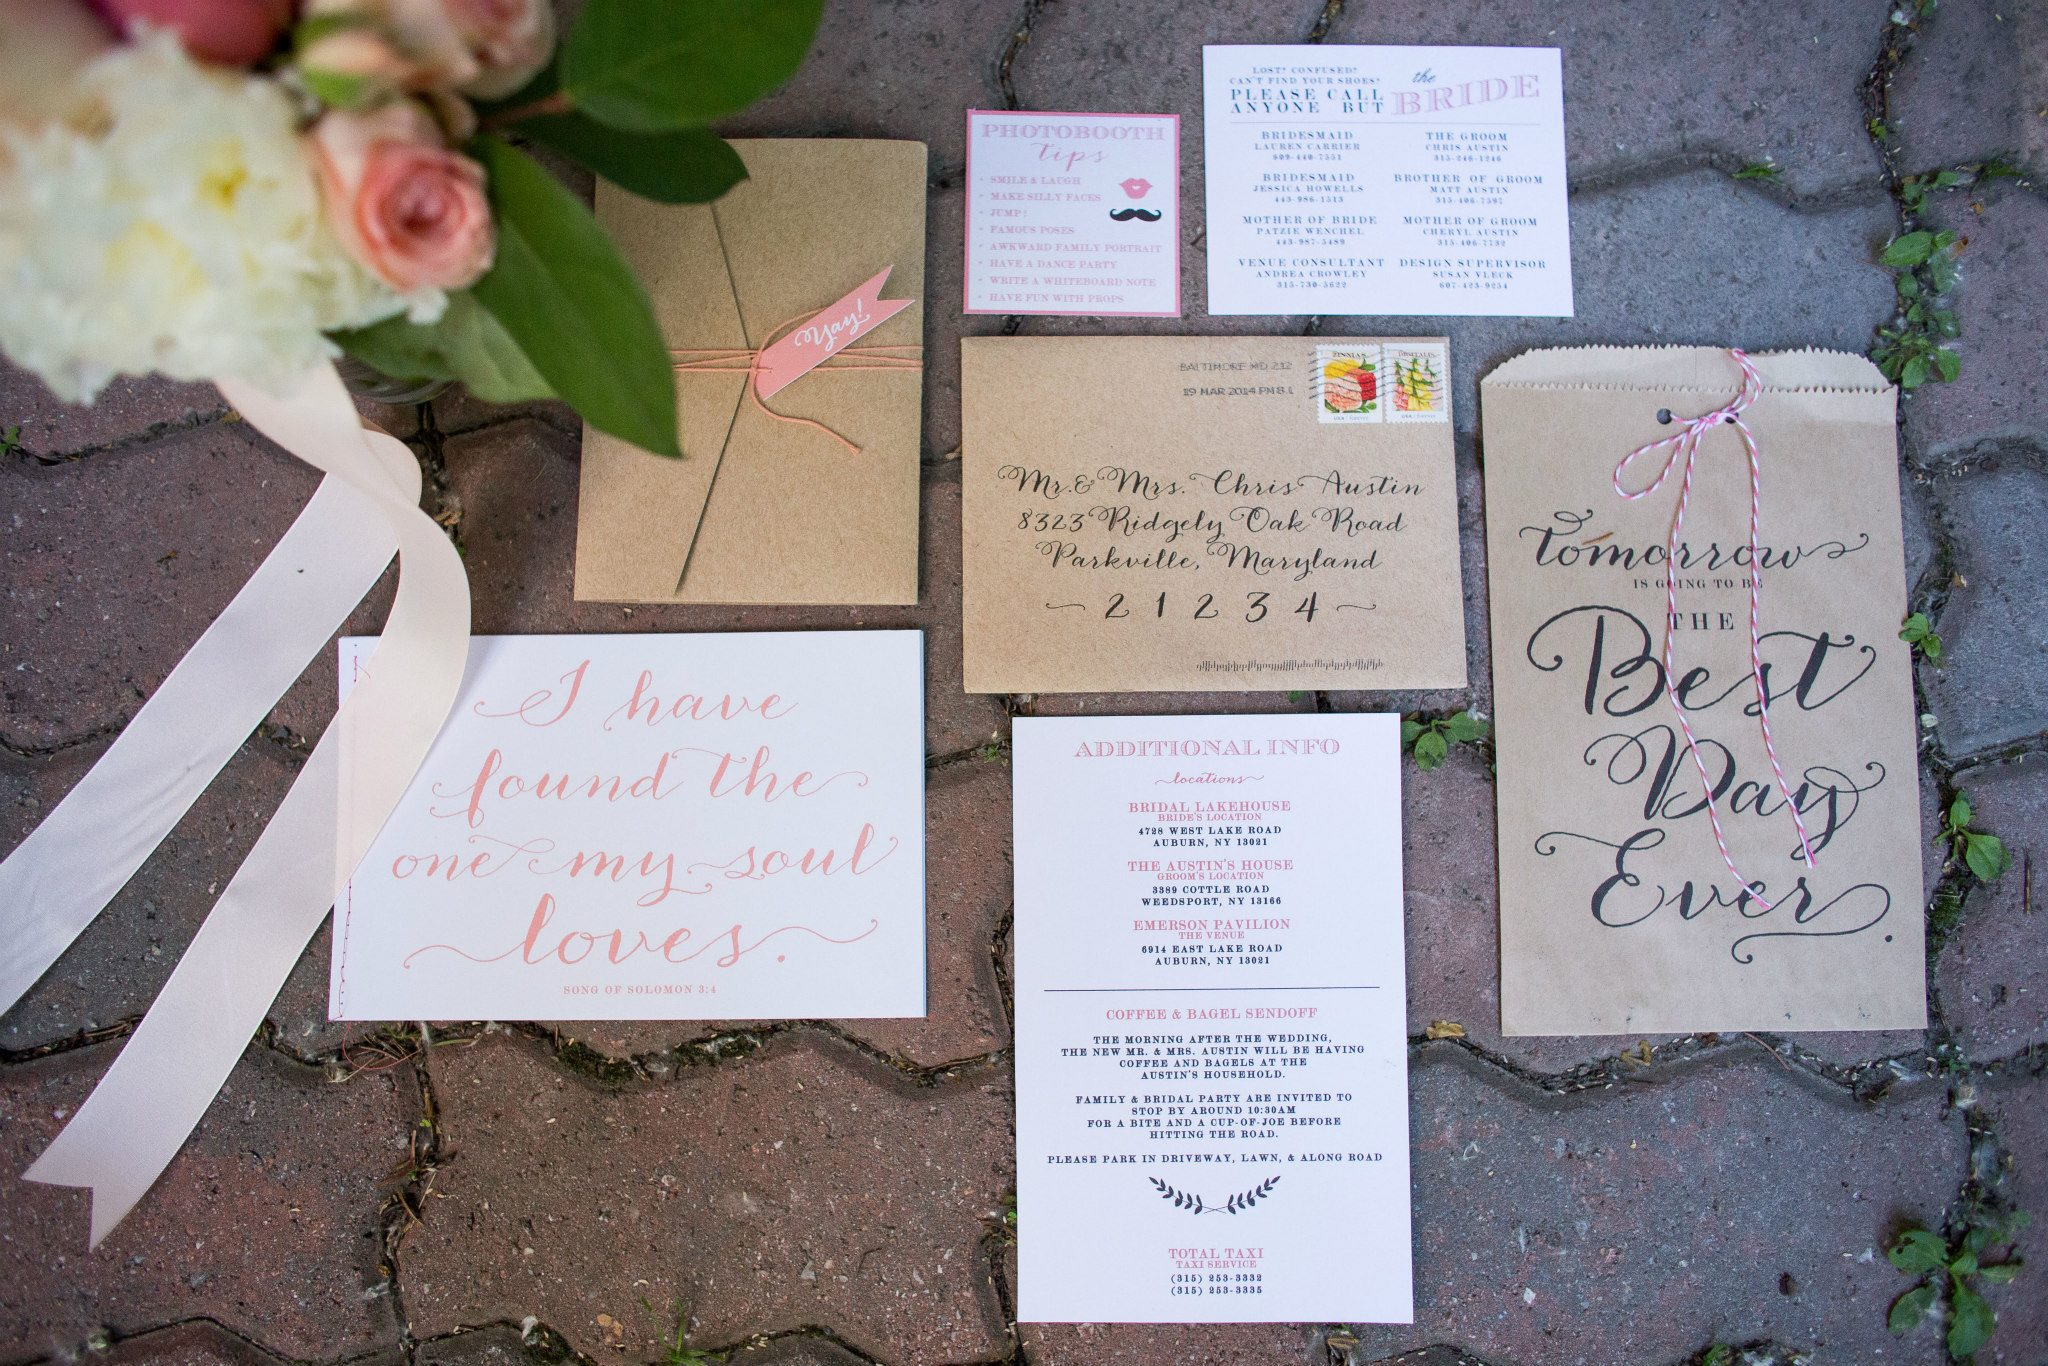 created, Designed & Printed entire wedding rehearsal kit, ceremony program (including bind stitching)